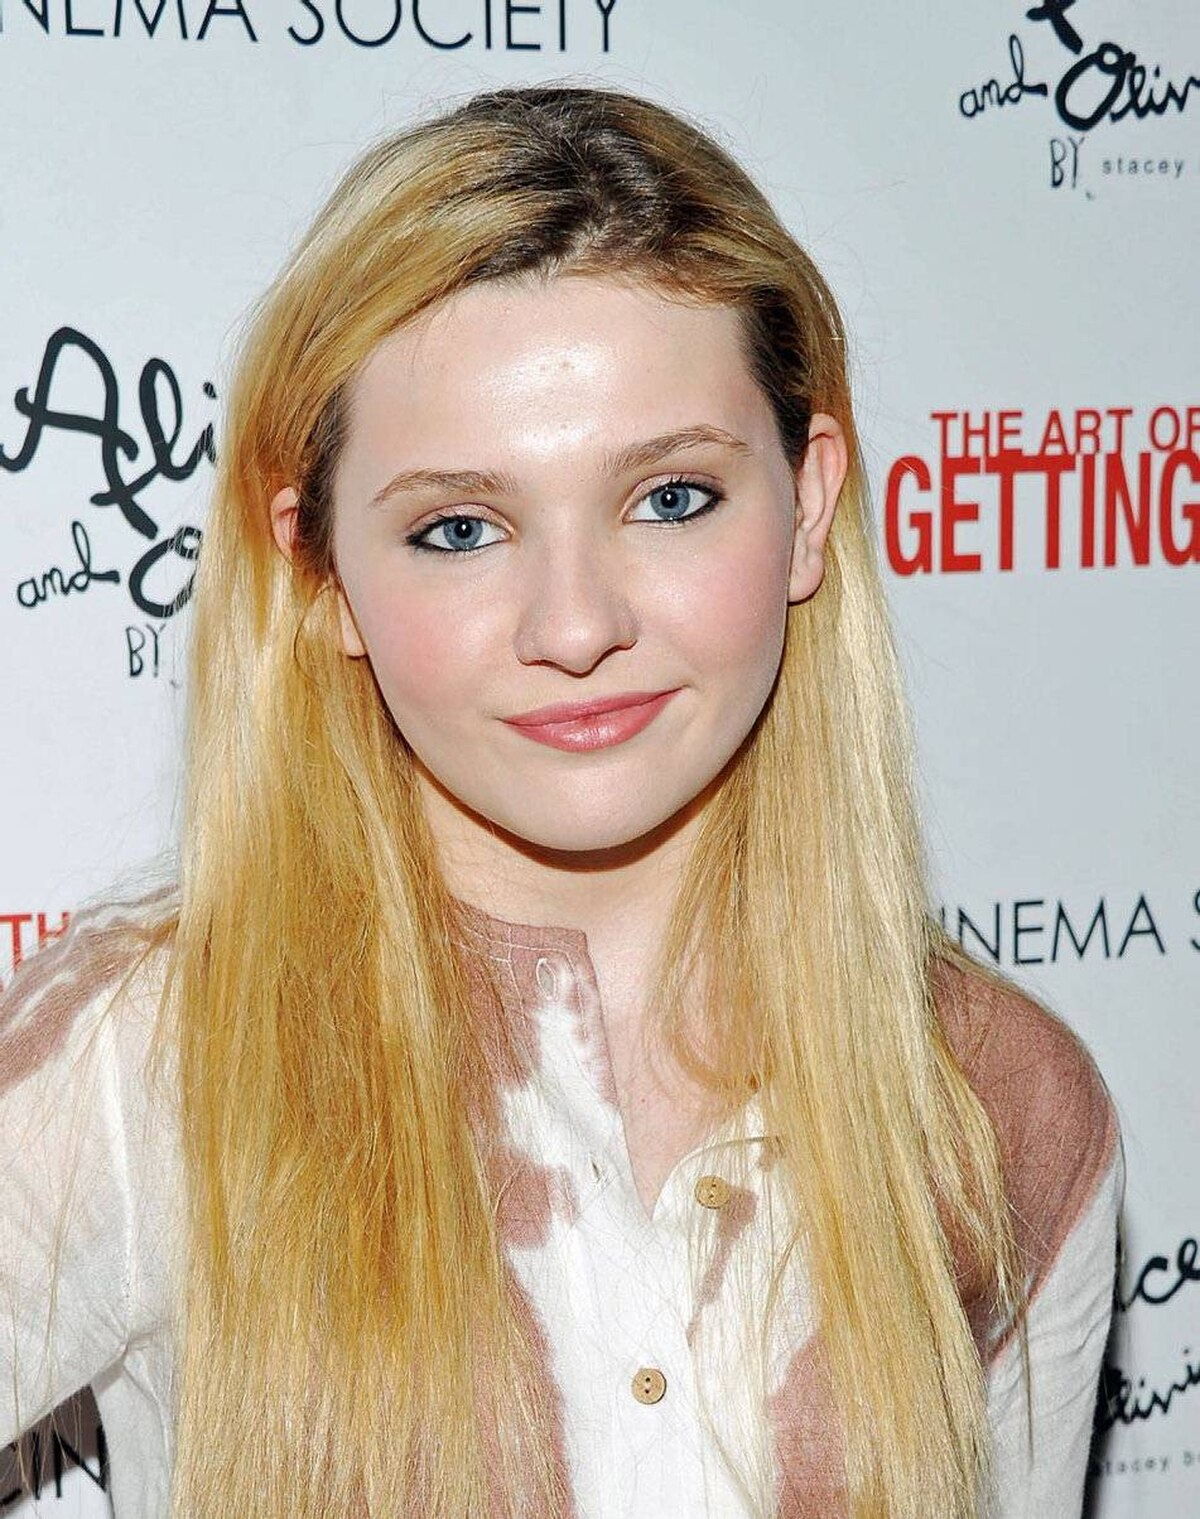 Actress Abigail Breslin attends the after party for the Cinema Society with Alice+Olivia screening of The Art of Getting By at Thompson Hotel LES on June 13, 2011 in New York.